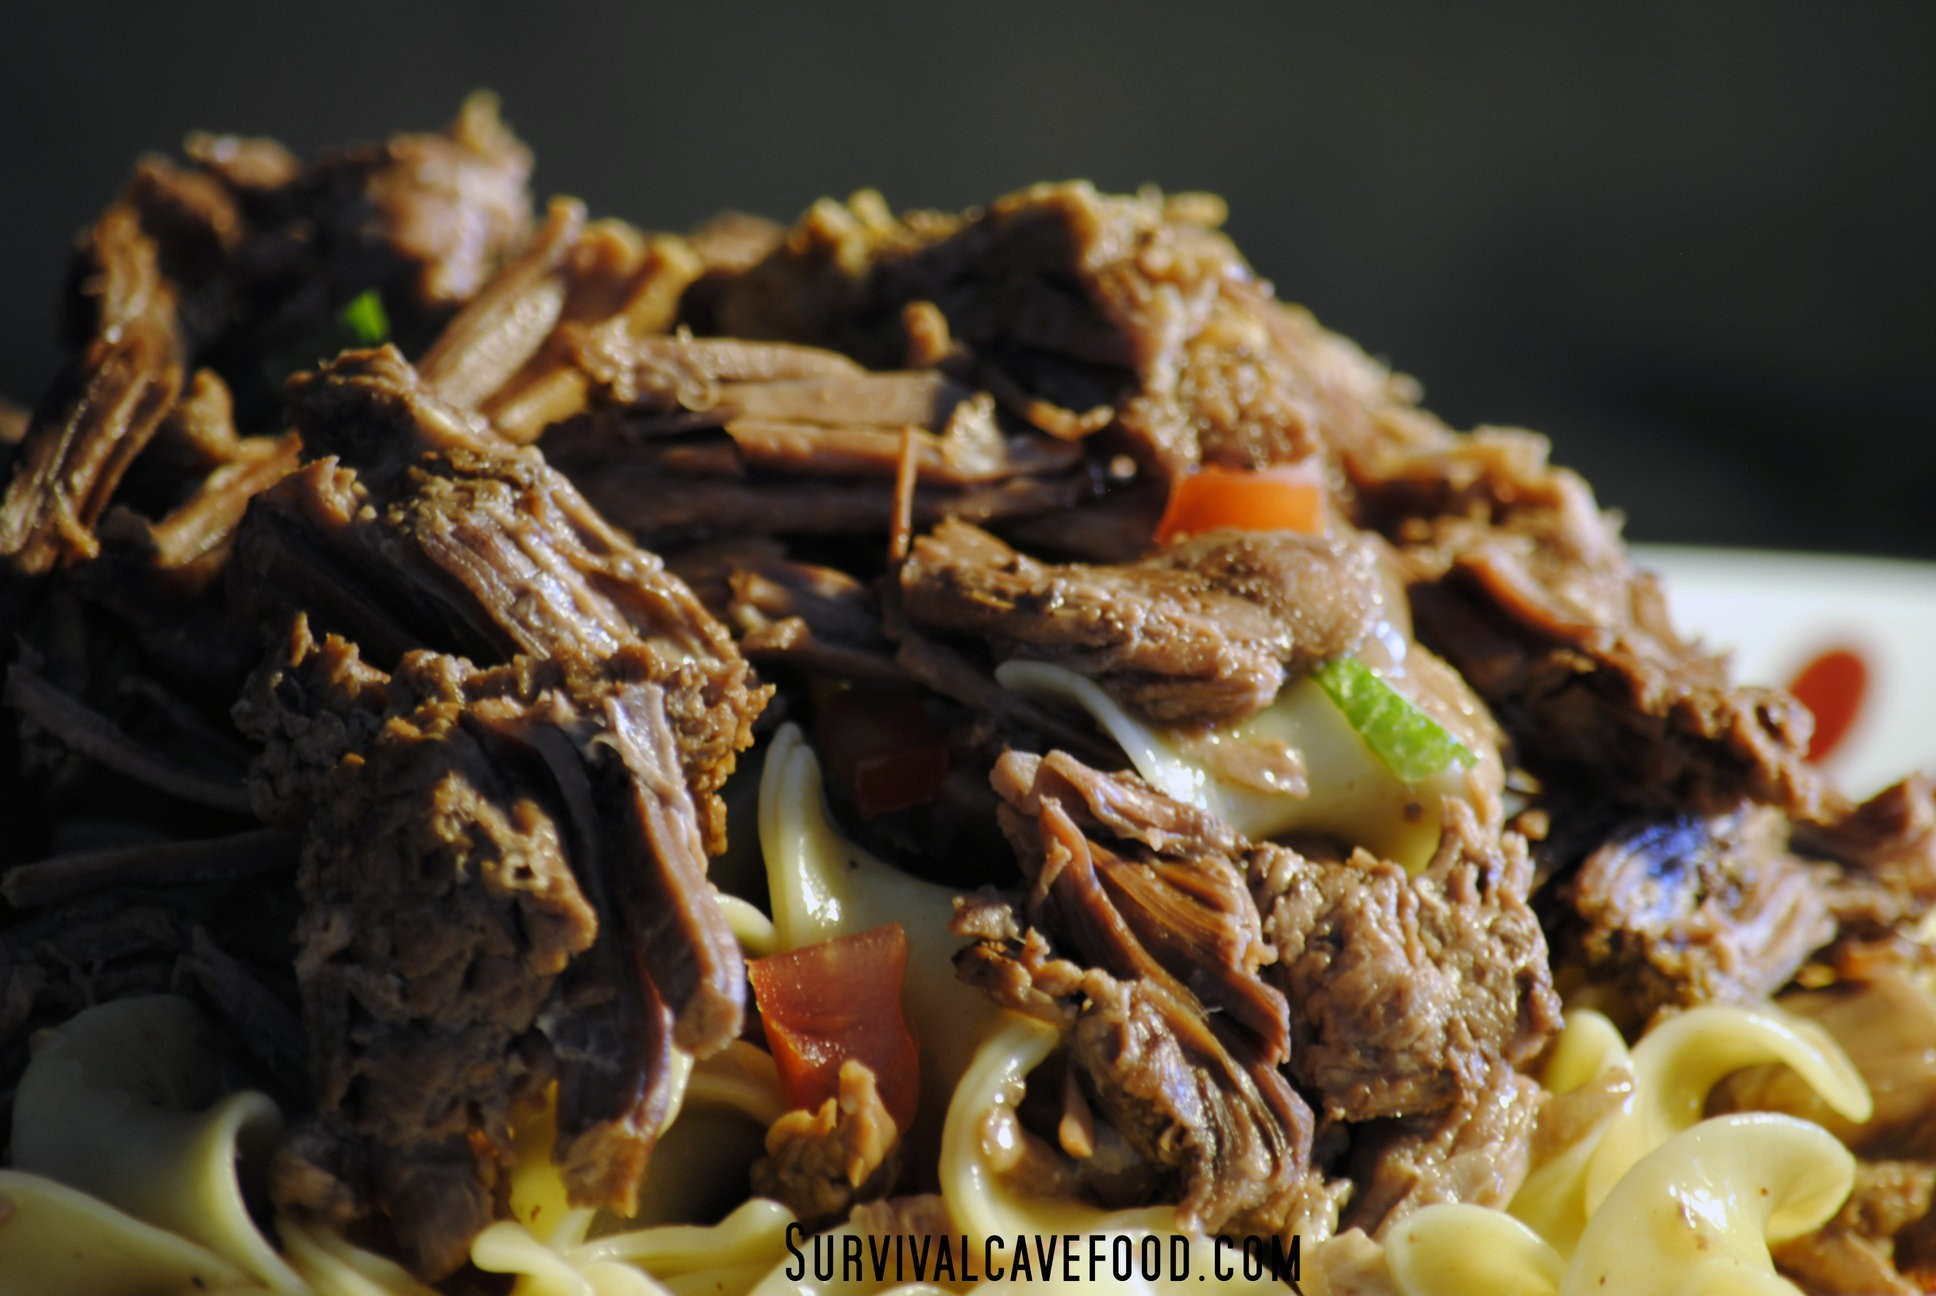 rsz_scf_beef_and_noodles_plate_3_1_1